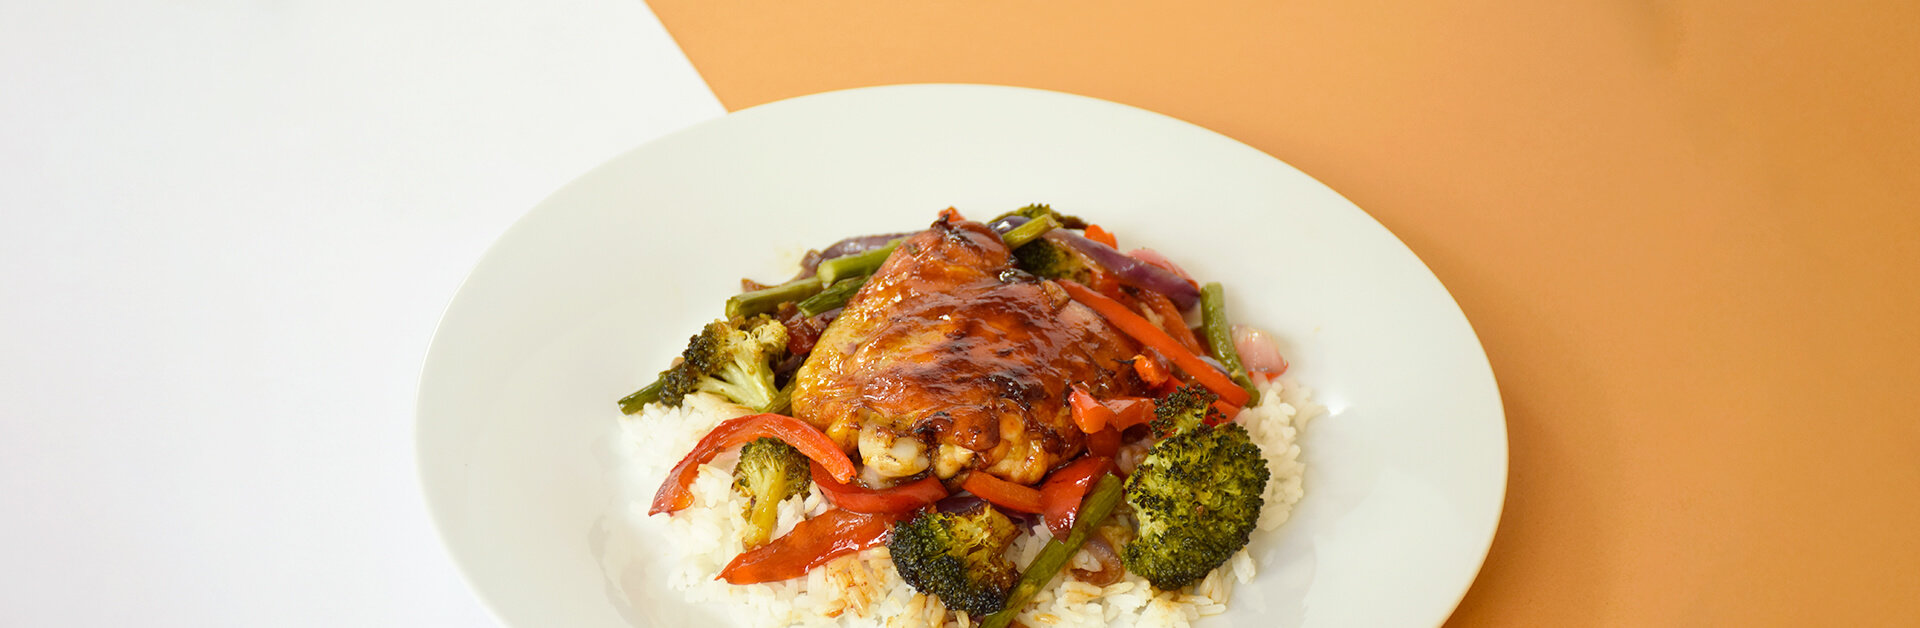 Hoisin ginger chicken, vegetables and rice on a plate.